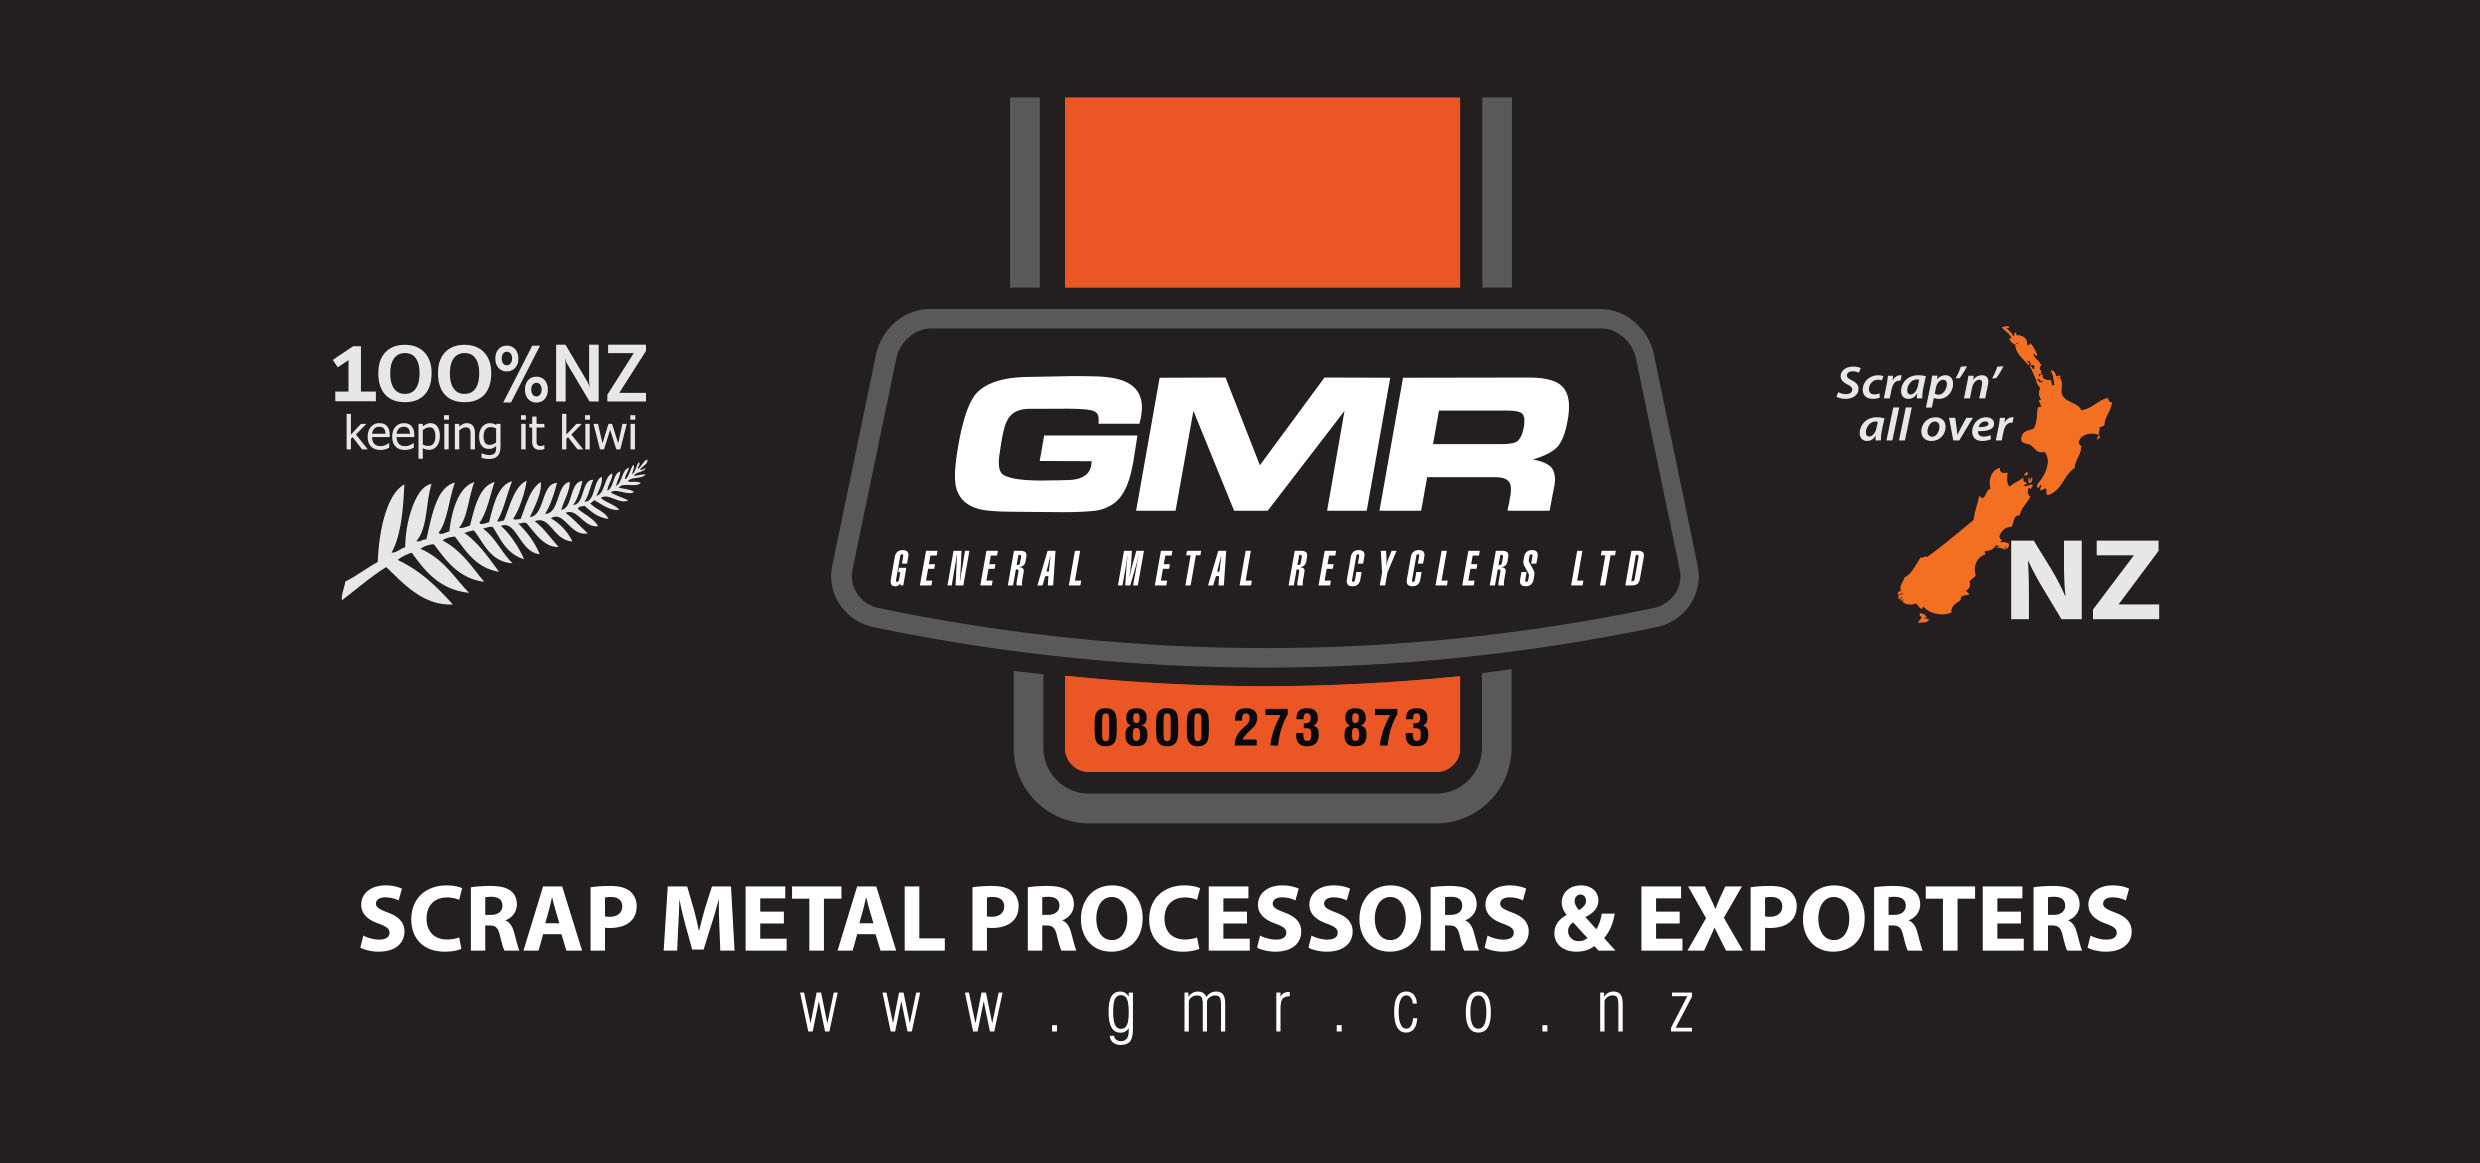 General Metal Recyclers